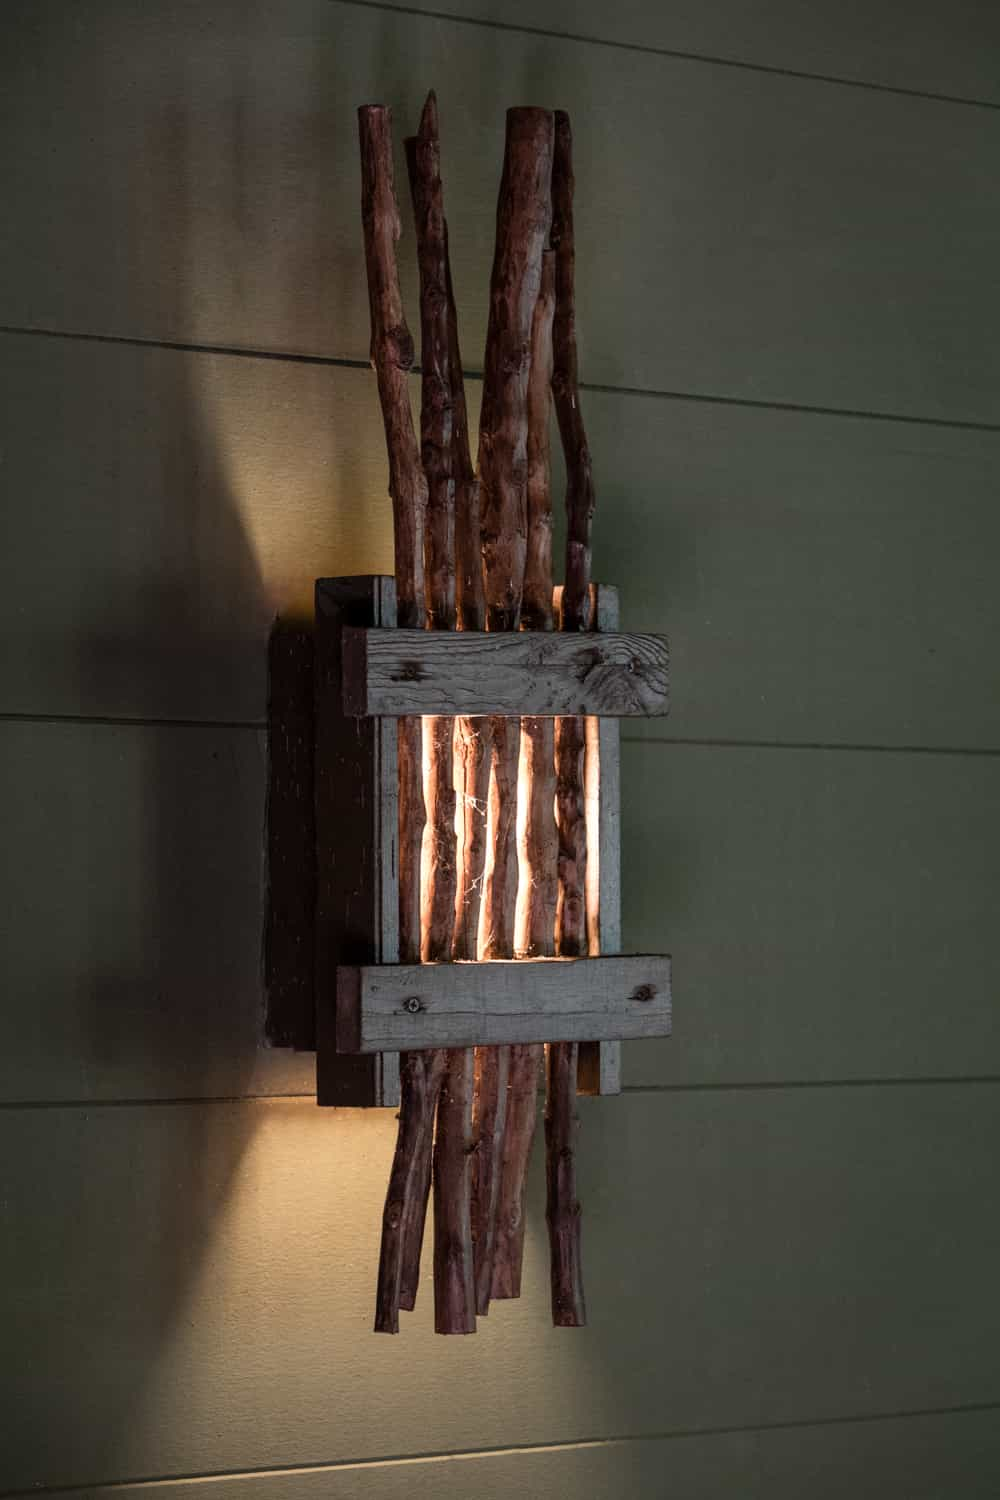 Unique light fixture on pavilion wall for wedding day events.